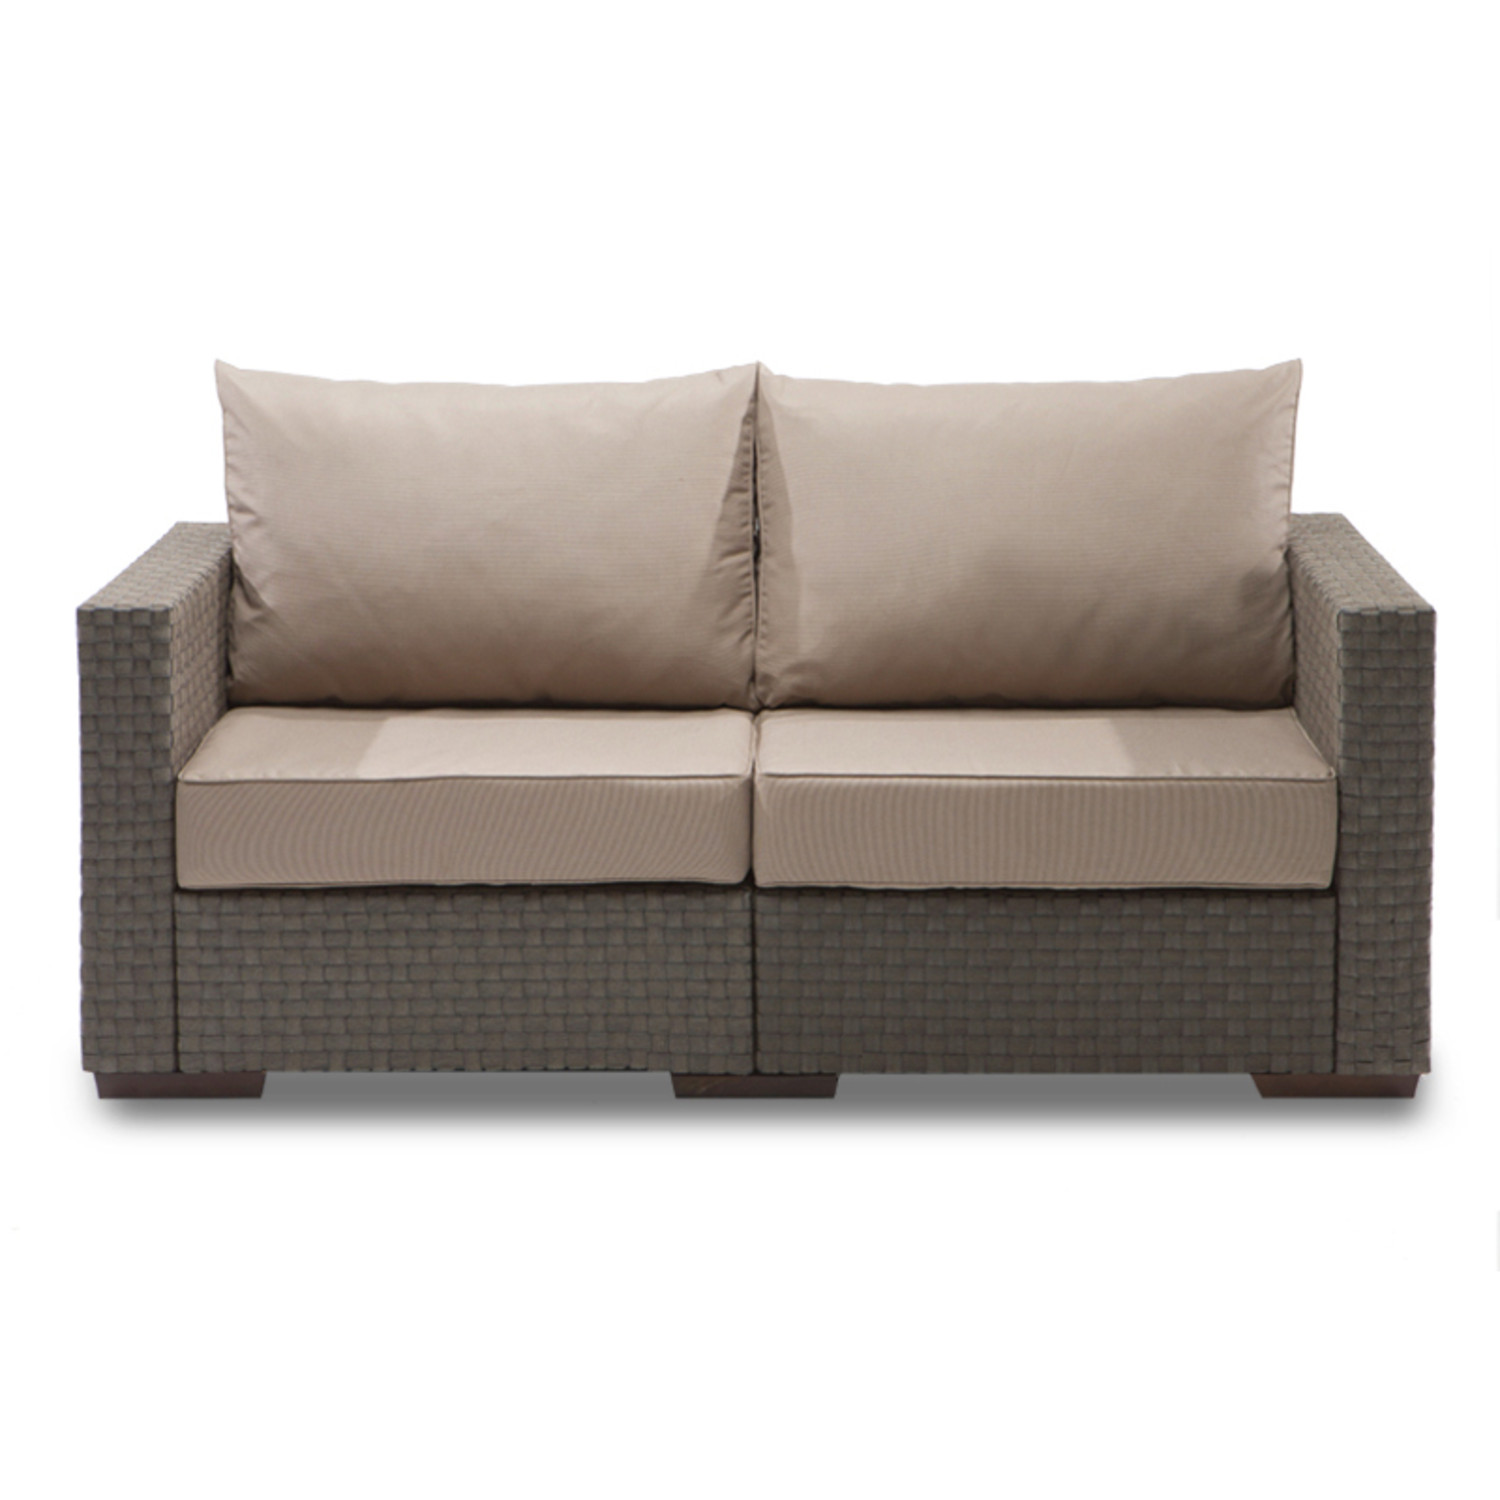 lovesac sofa covers hacks outdoor touch of modern